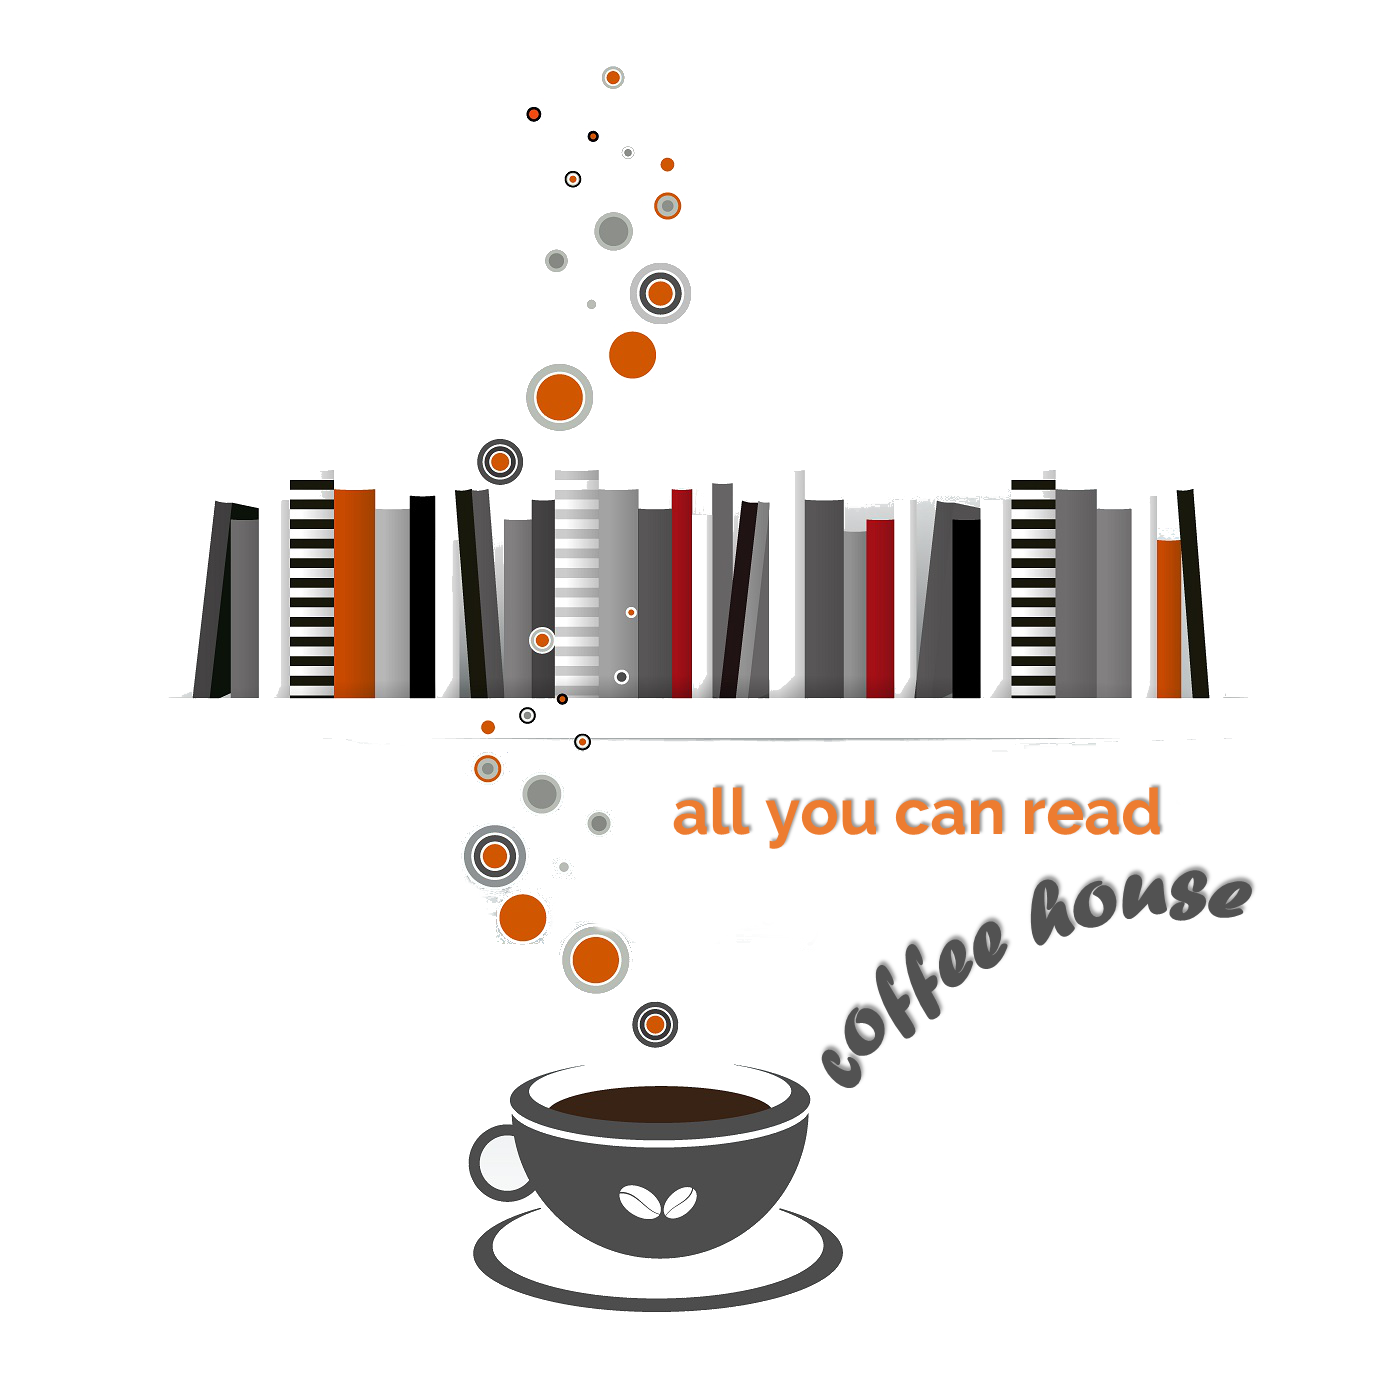 rukhis all you can read coffee house